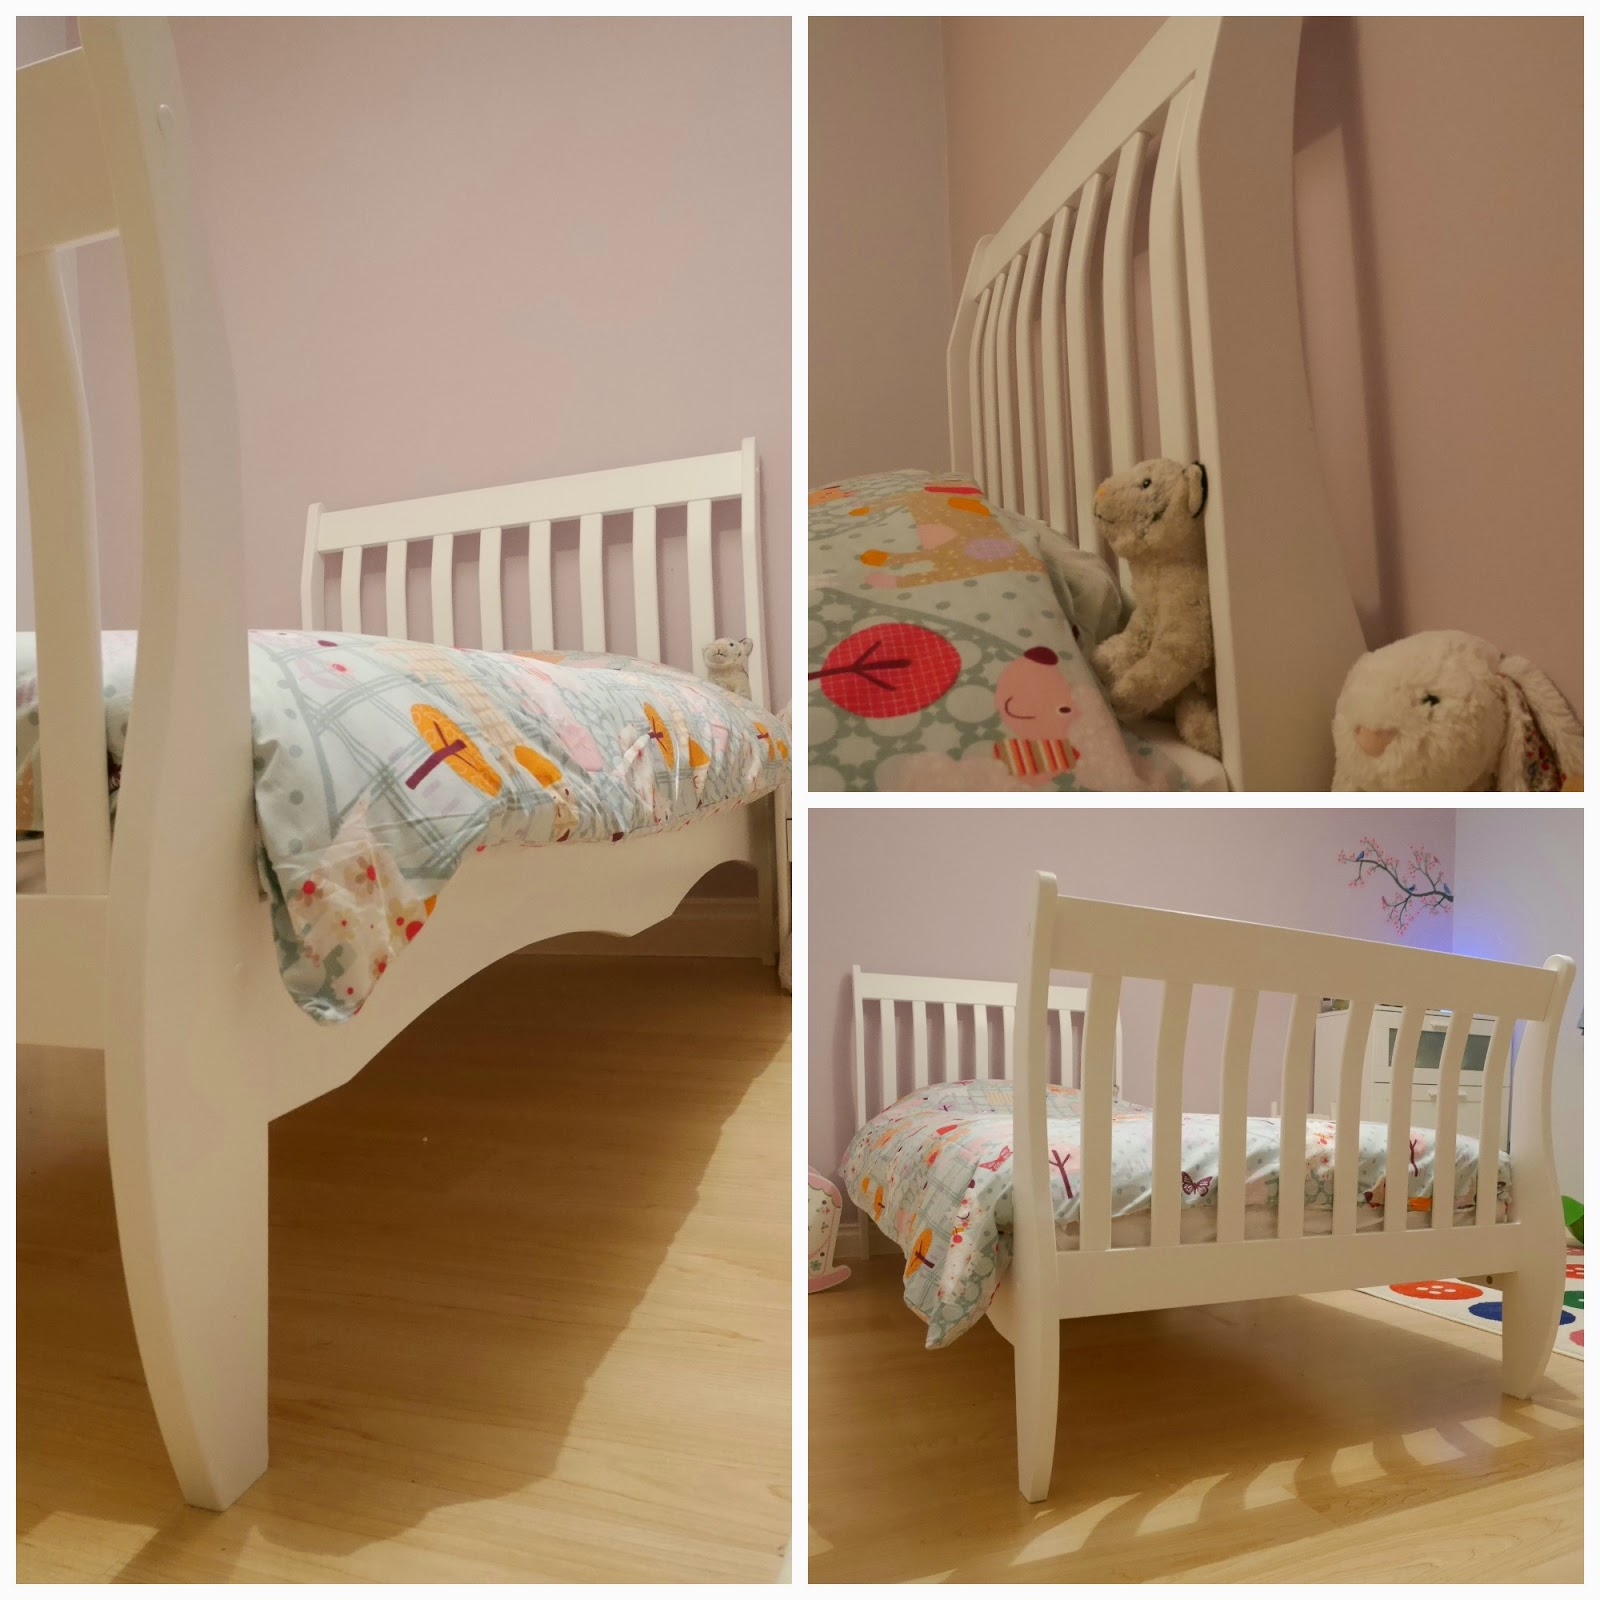 Baby bed for 2 year old - My Youngest Daughters Bedroom Has Been Transformed From A Toddler Room Into A Little Girls Bedroom It Is Now A Room Which We Can Add To As She Grows Up And